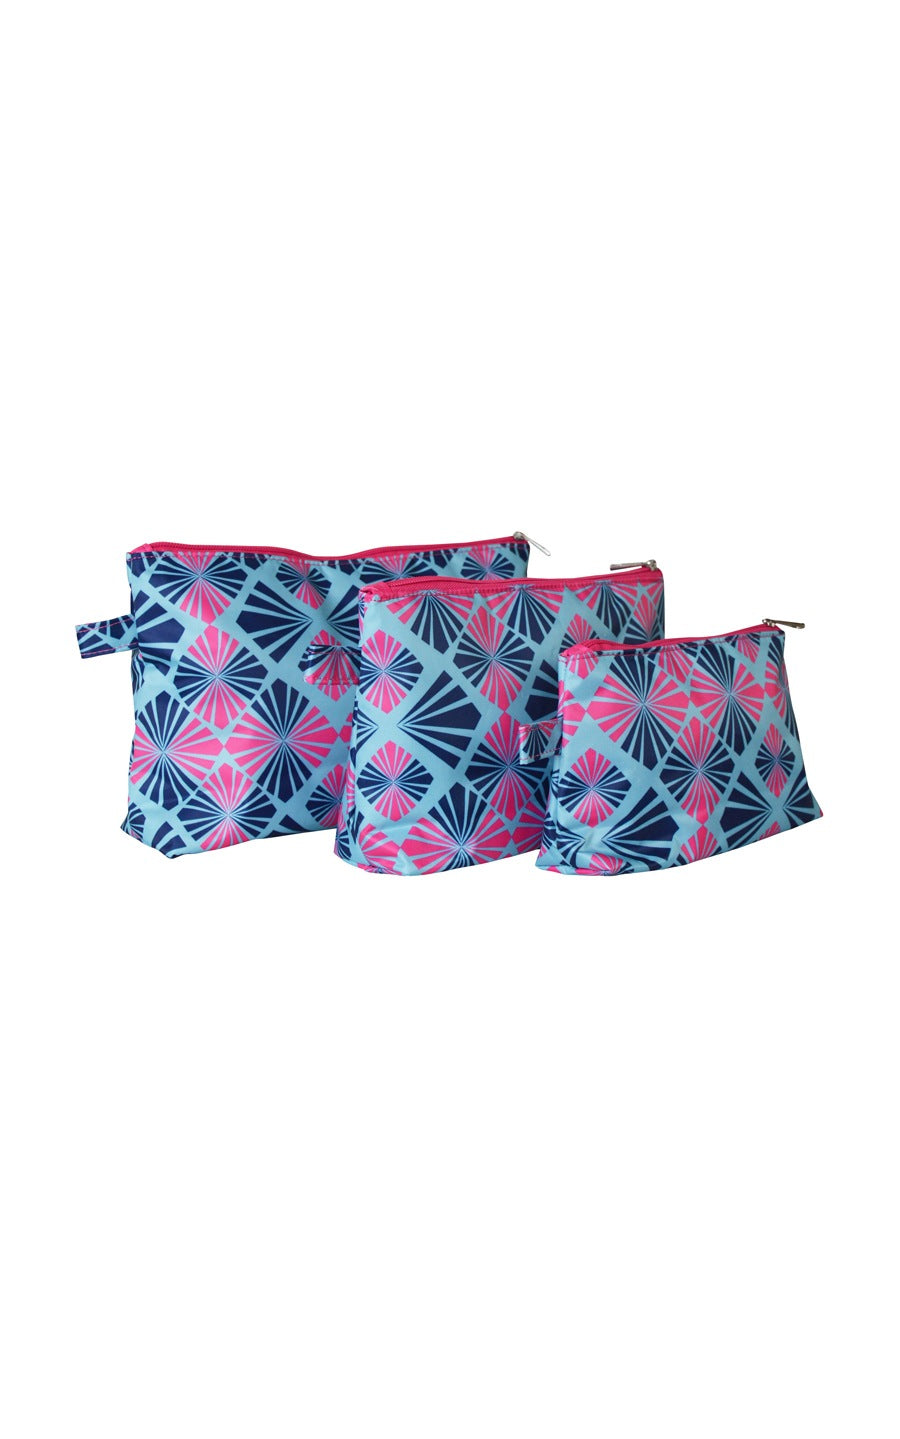 Summer Rays 3 Piece Cosmetic Bag Set - FINAL SALE